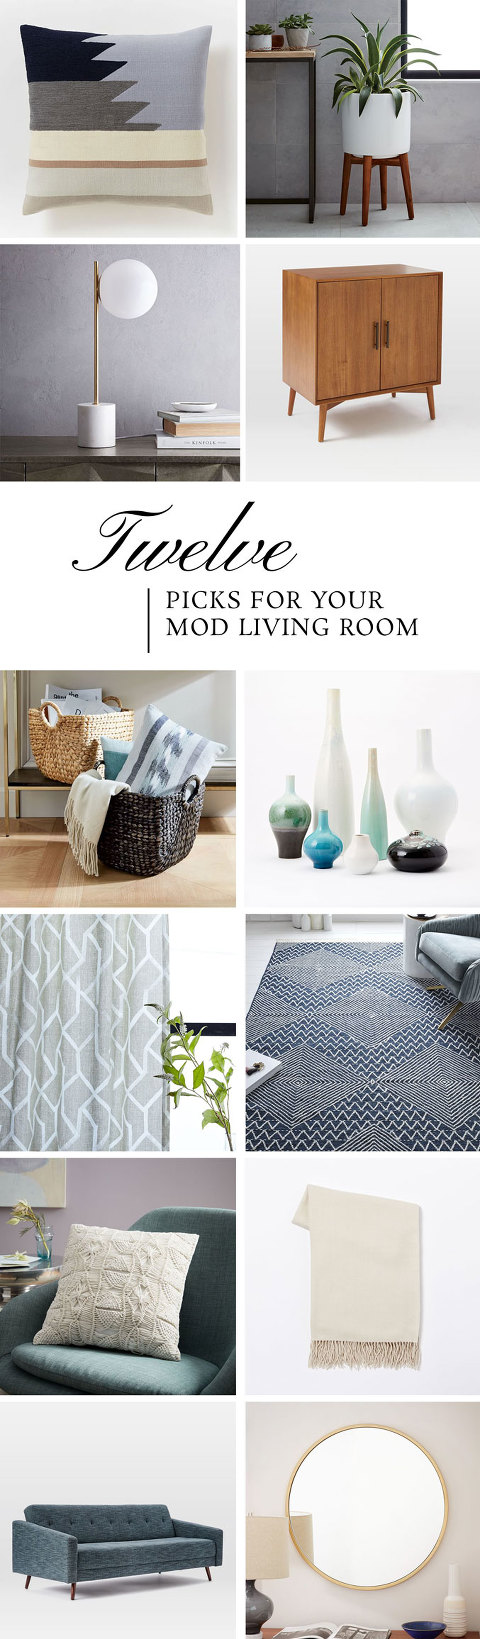 Everything You Need For Your Modern Living Room Makeover   dreamgreendiy.com